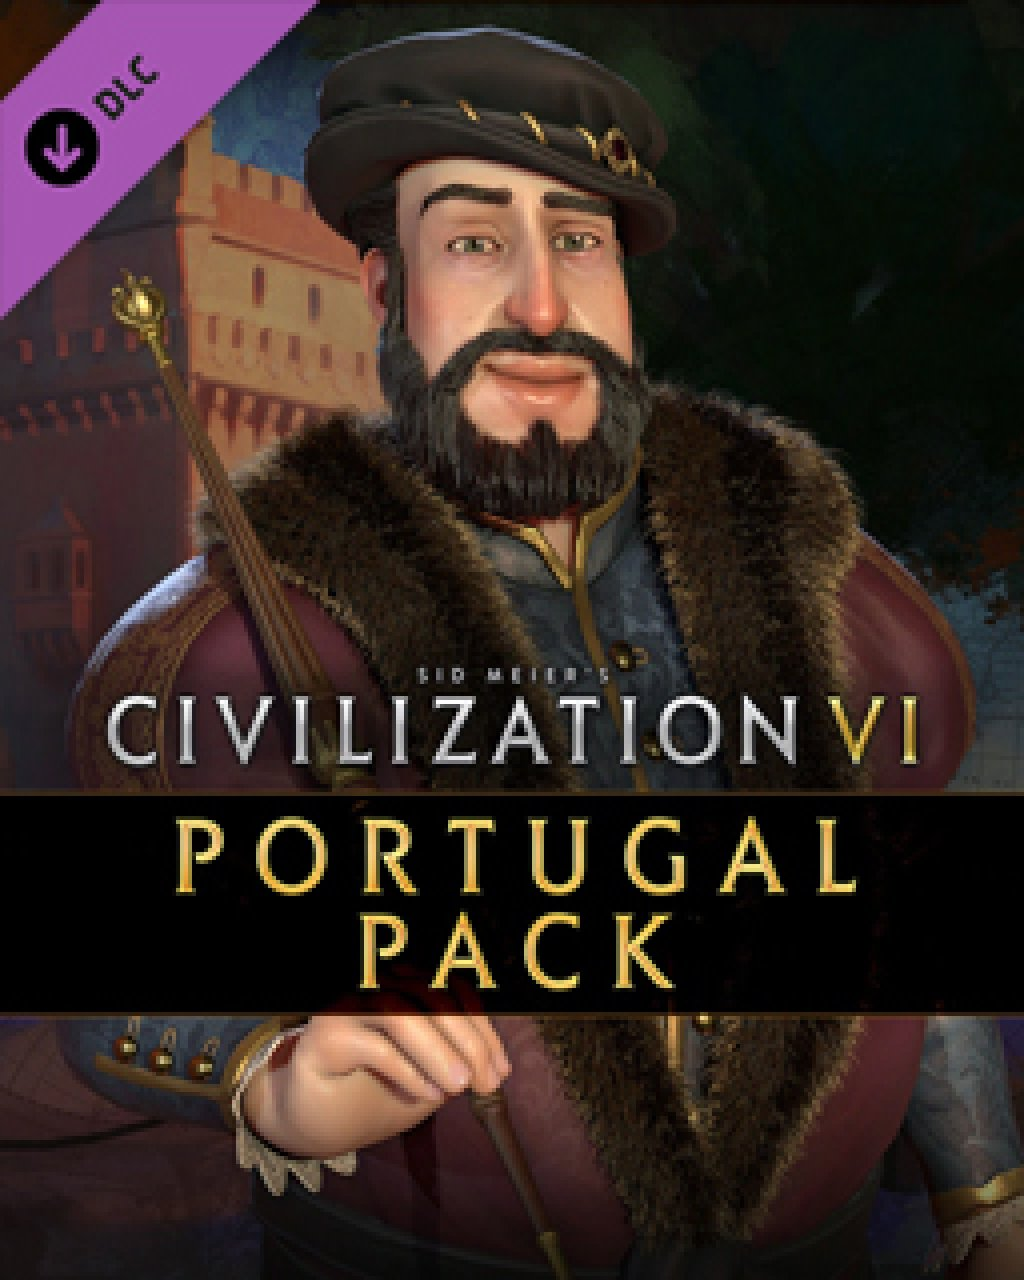 Civilization VI Portugal Pack